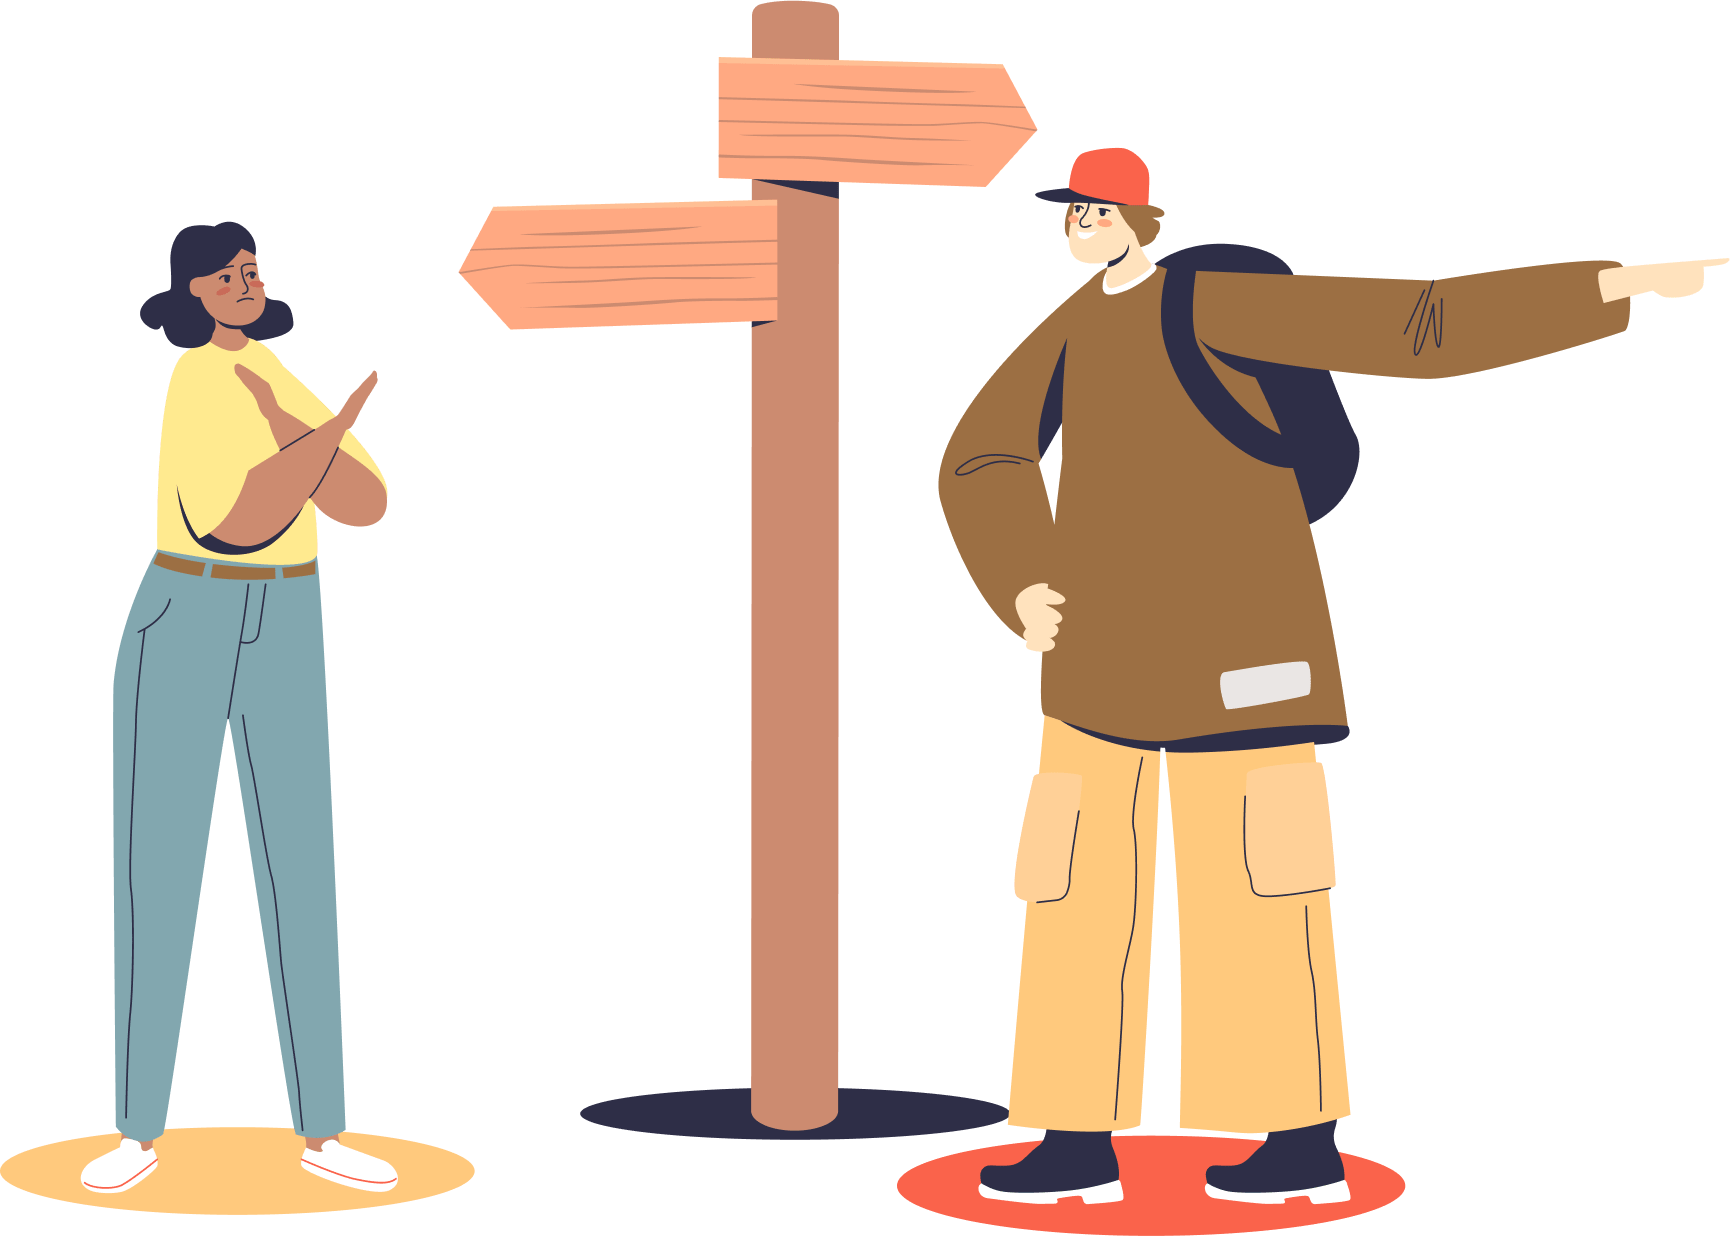 An illustration of two individuals disagreeing on the right path to take